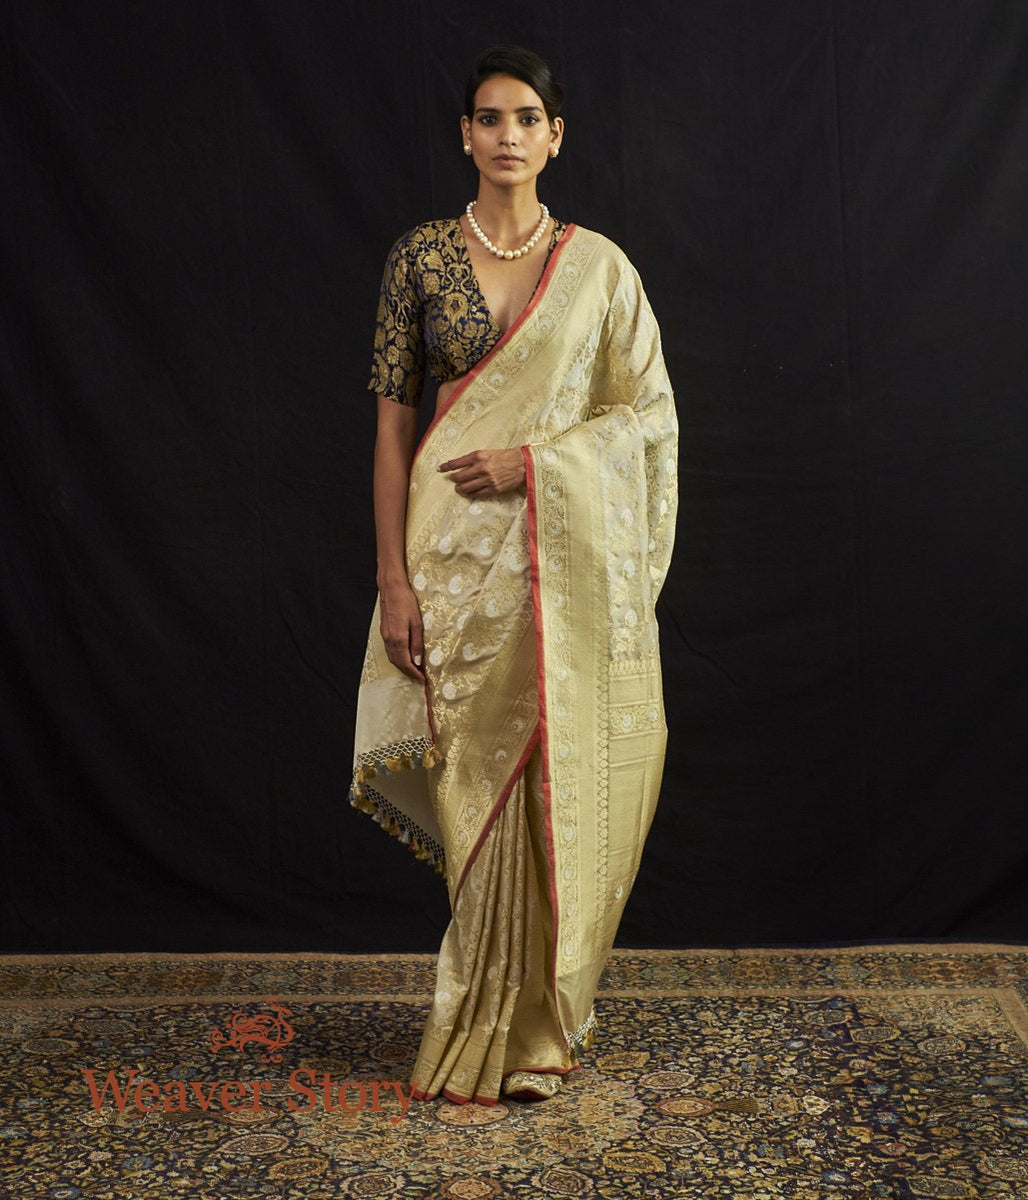 Handwoven Offwhite Sona Rupa Kadhwa Jangla with Red Selvedge